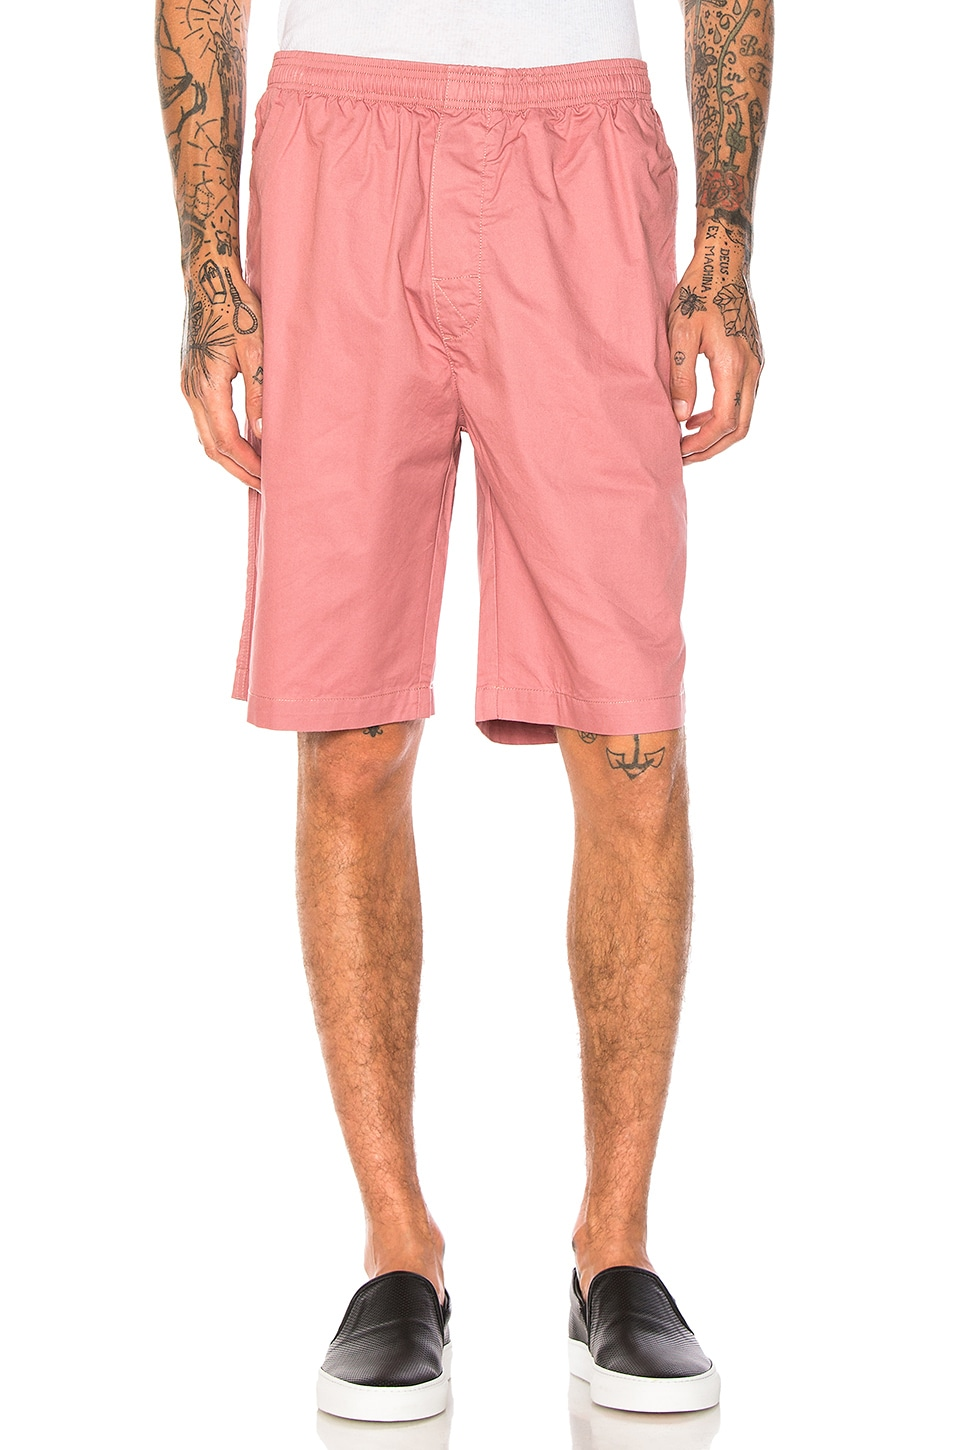 Light Twill Beach Short by Stussy